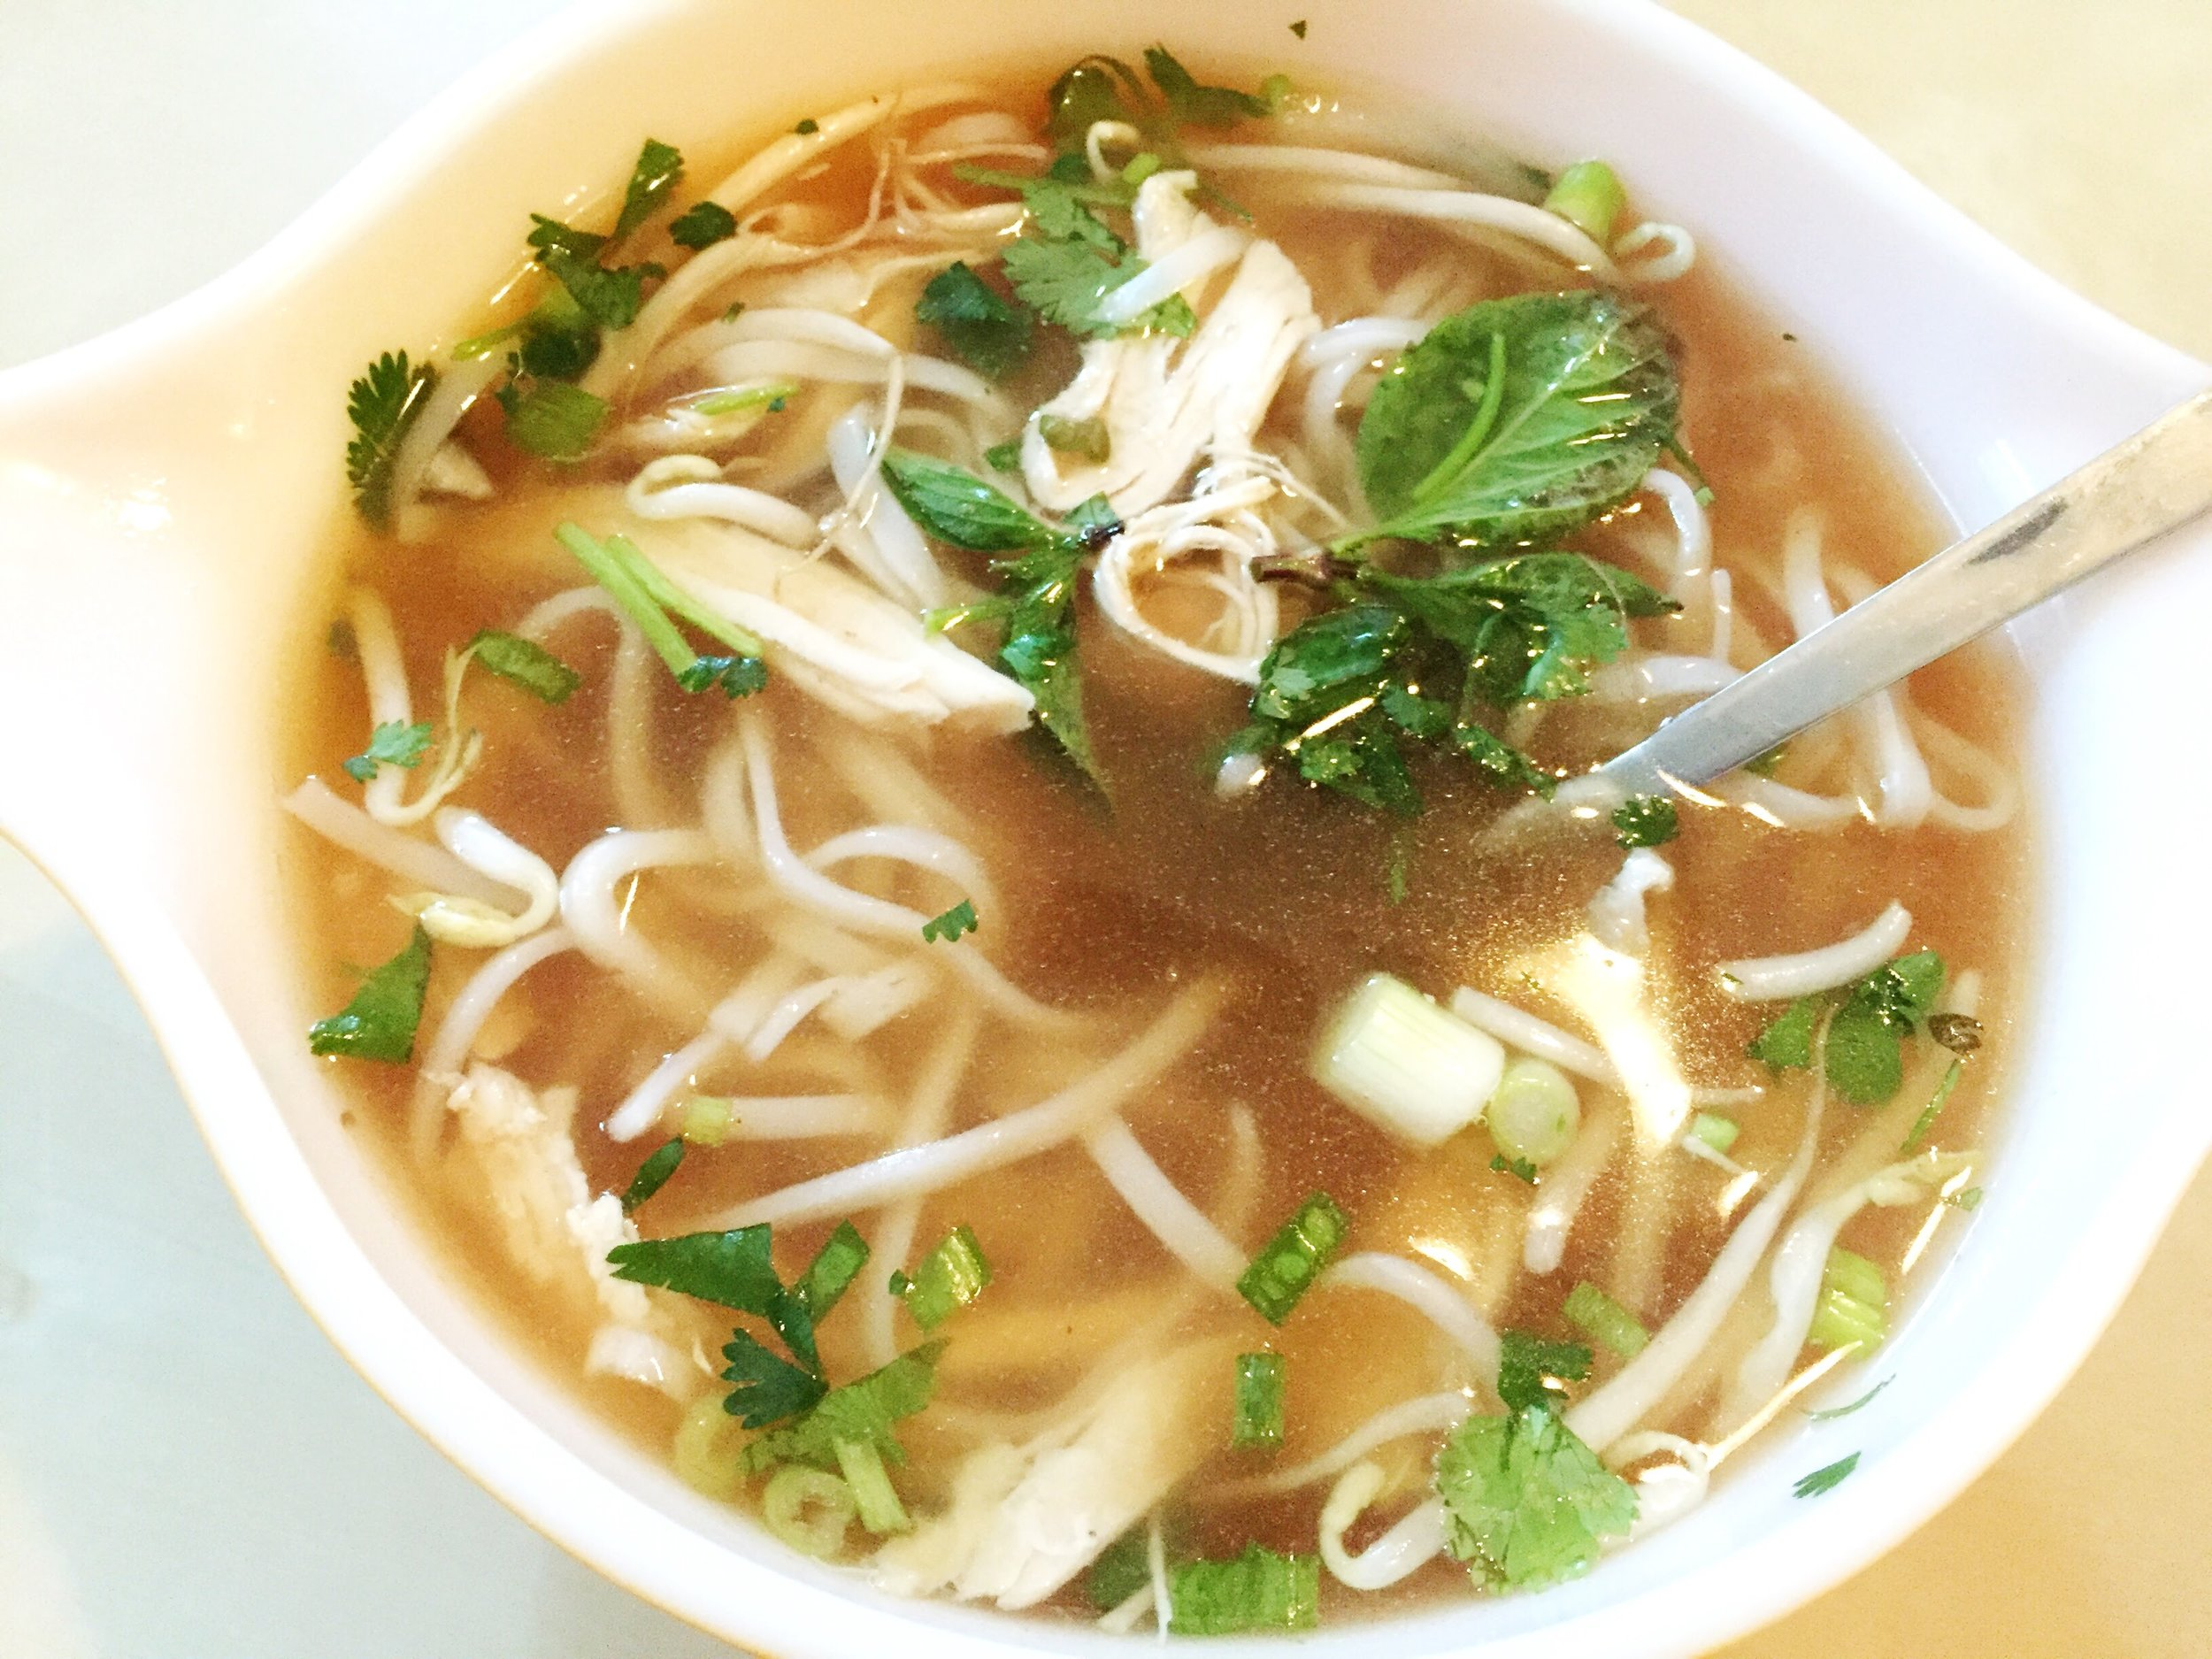 Pho - The cure for whatever ails you